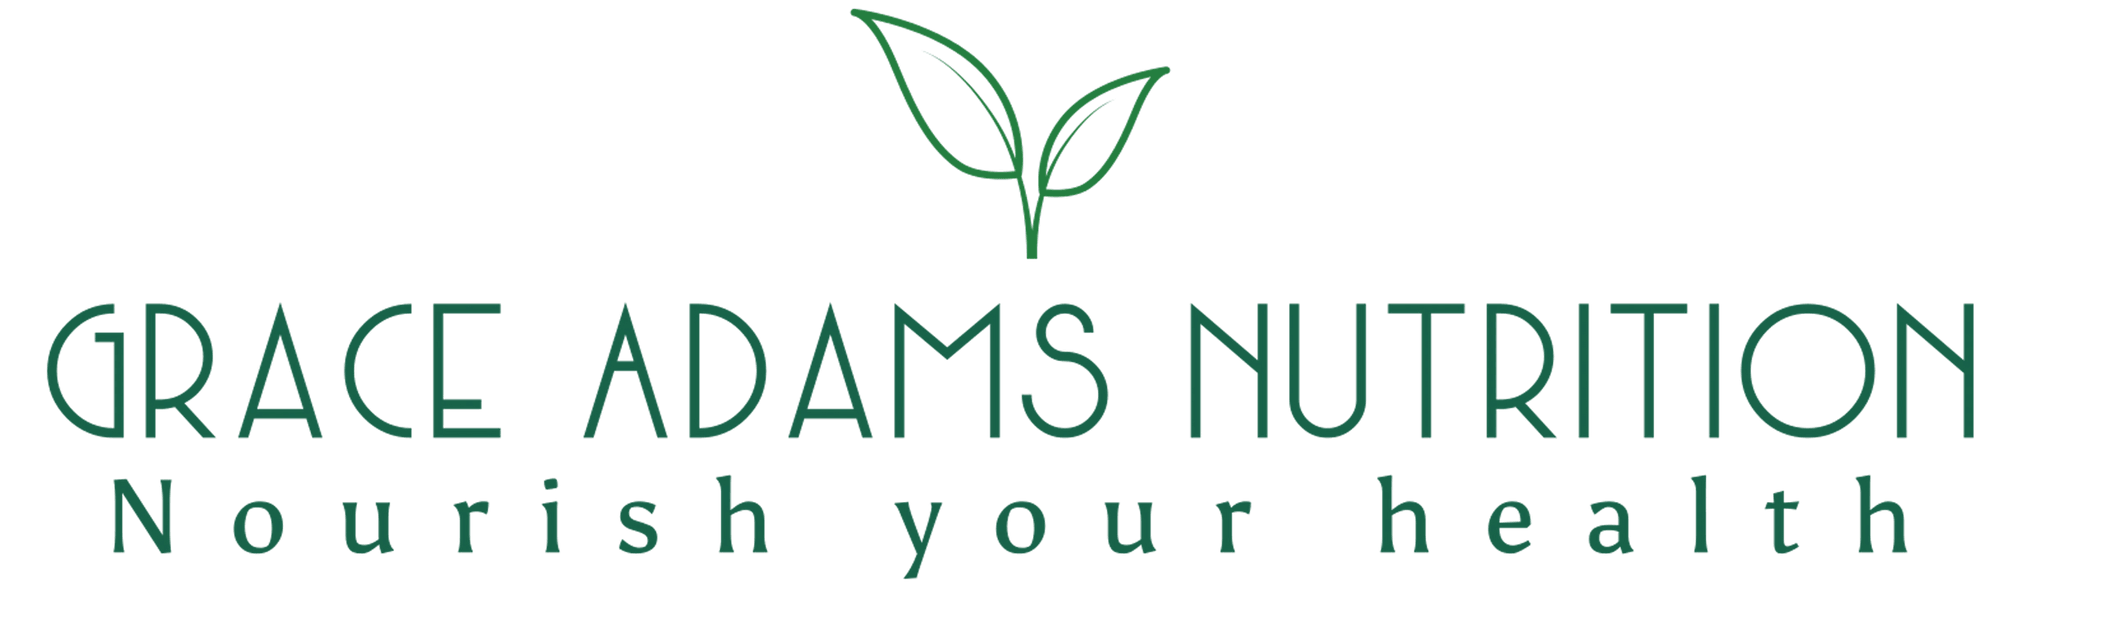 Grace Adams Nutrition